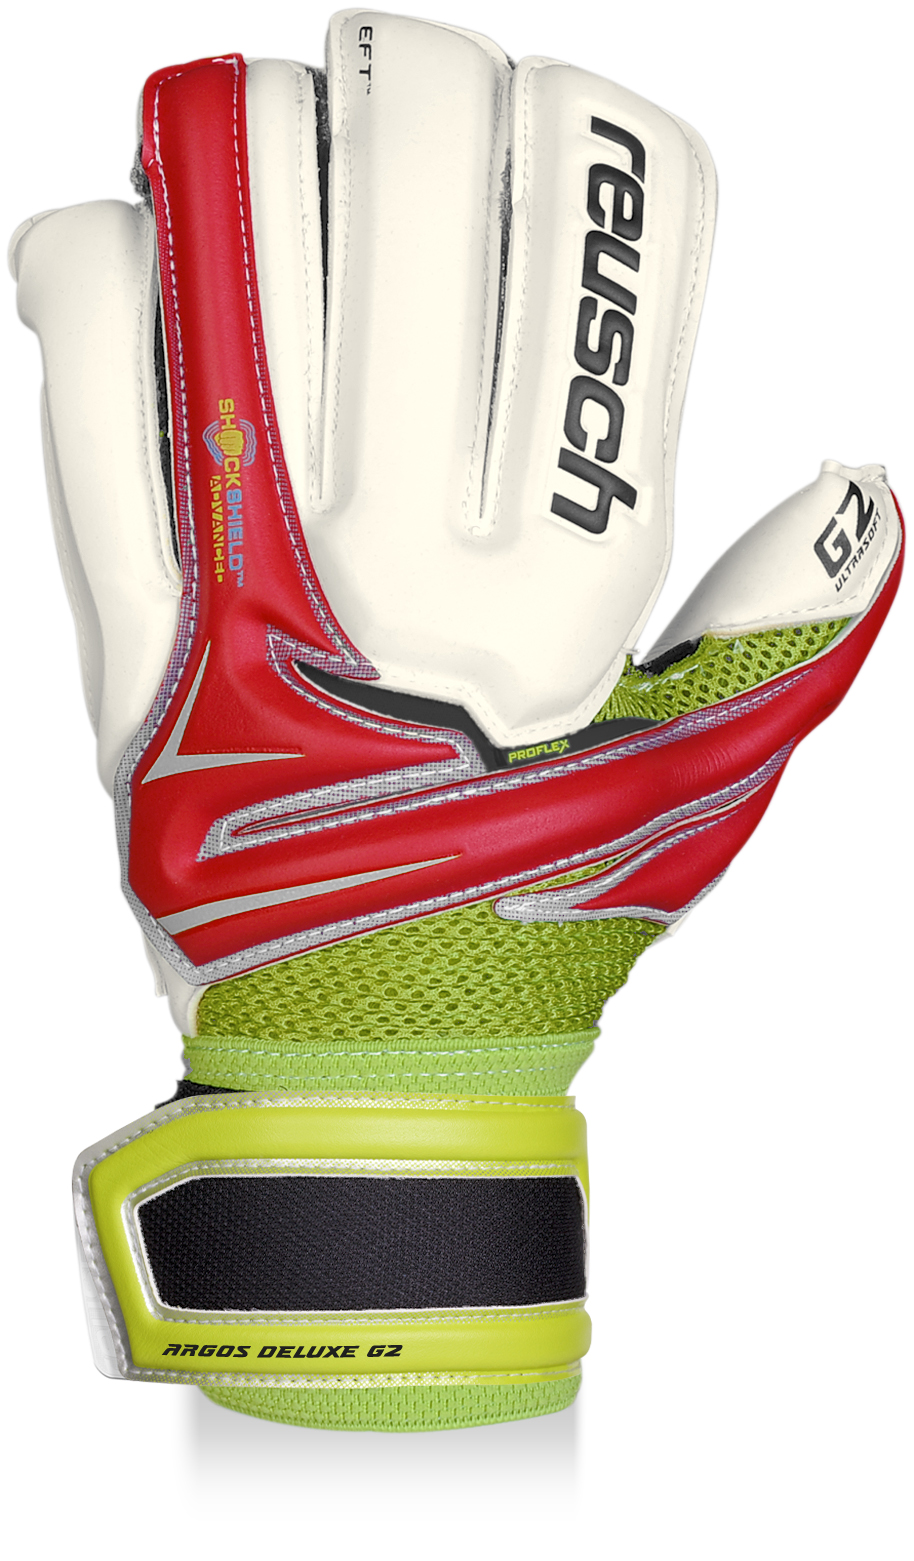 Reusch Argos Deluxe G2 (Fire Red)